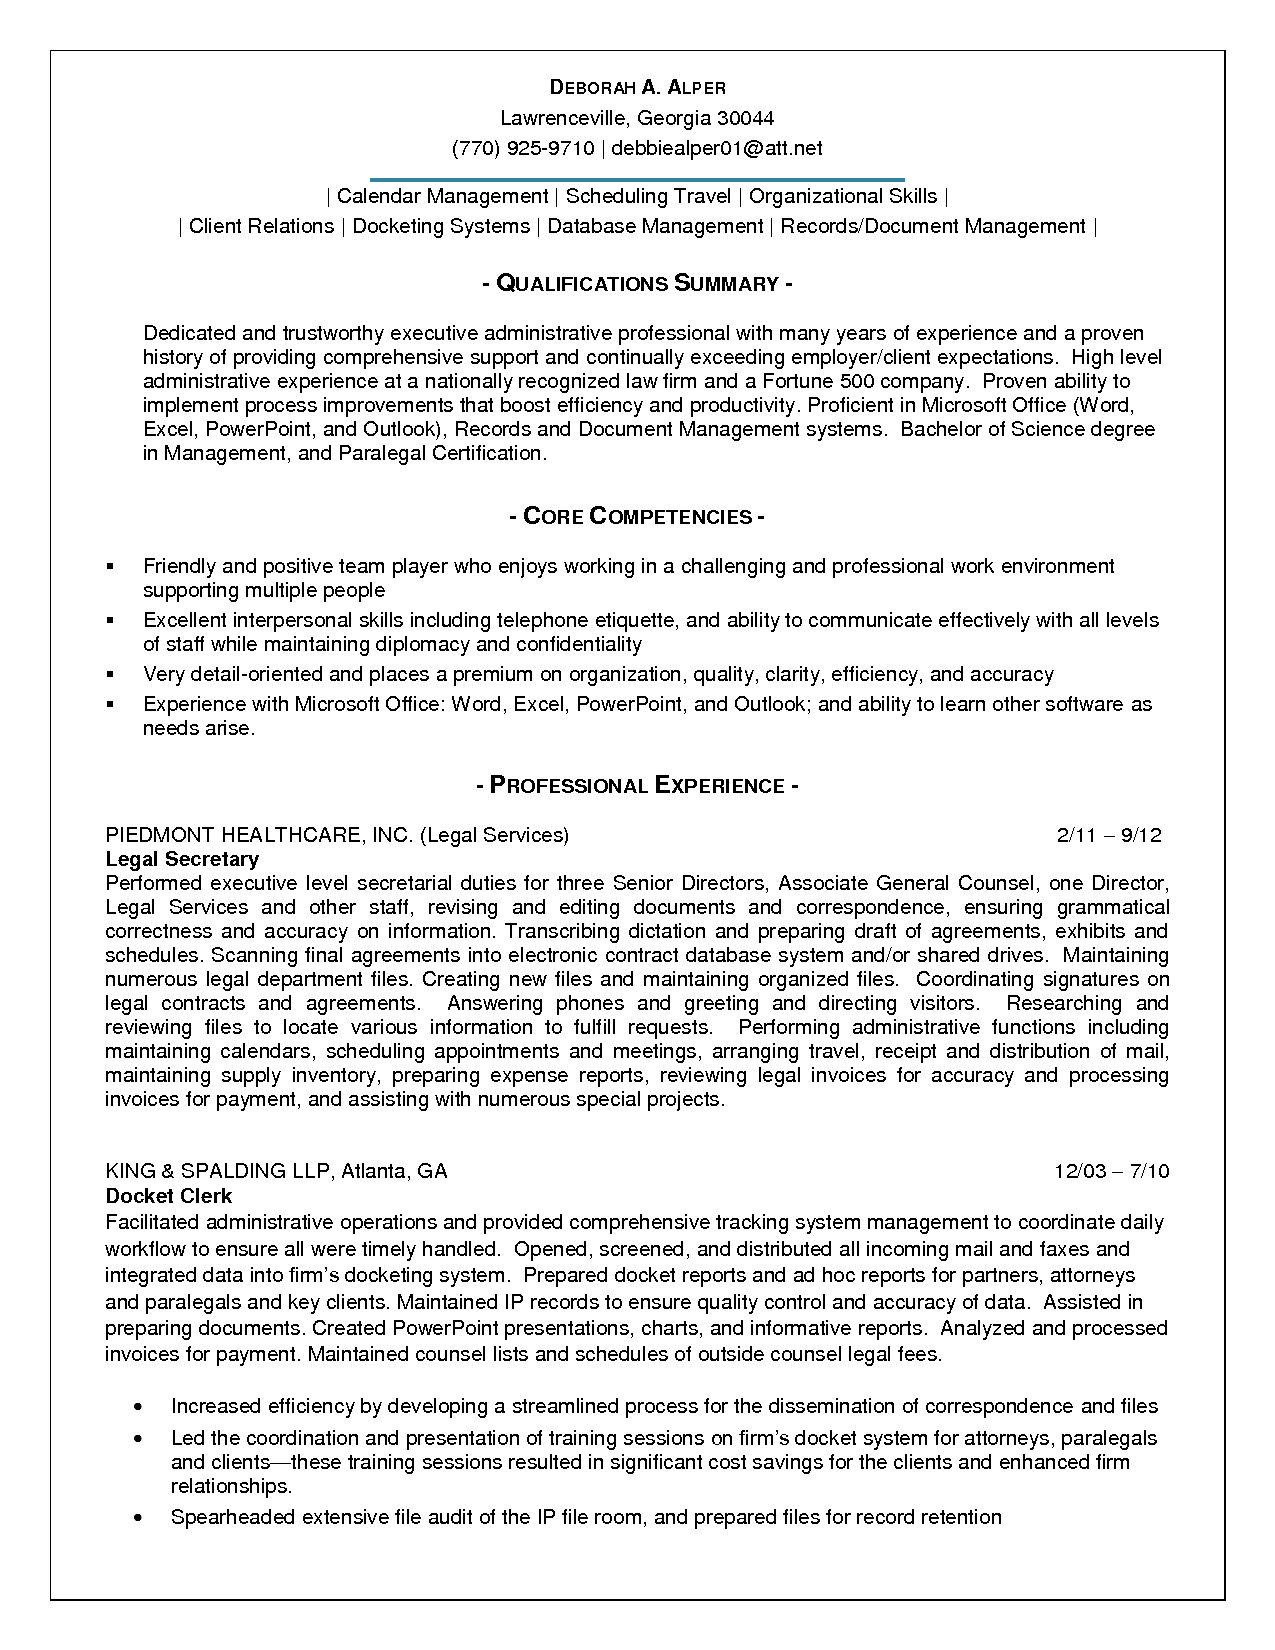 Summary Qualifications Sample Resume For Administrative Assistant